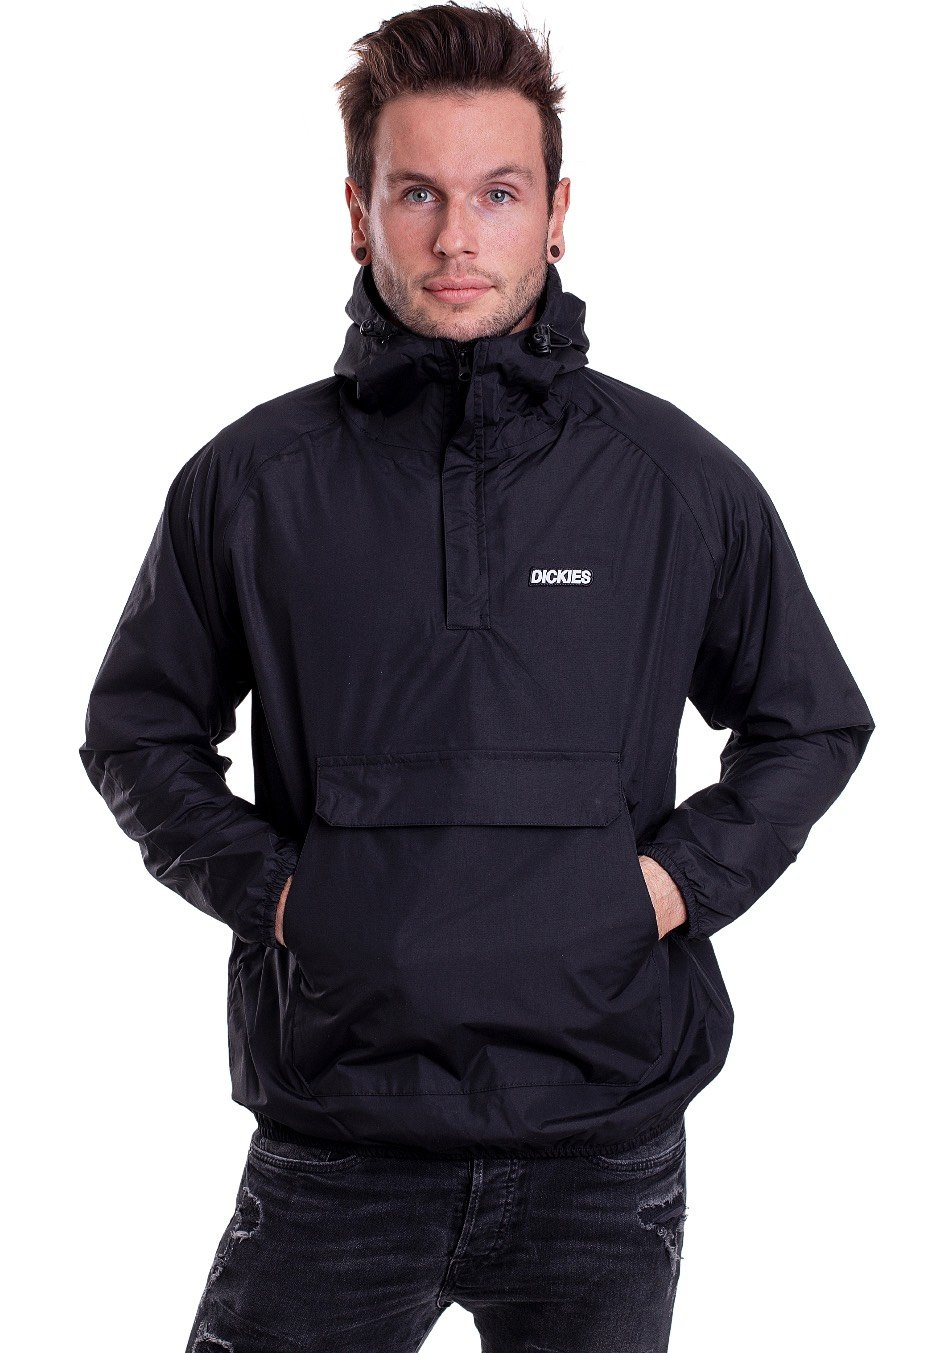 Dickies Jacket Black Axton Dickies Axton Black Jacket Dickies Axton XwvXCxq4